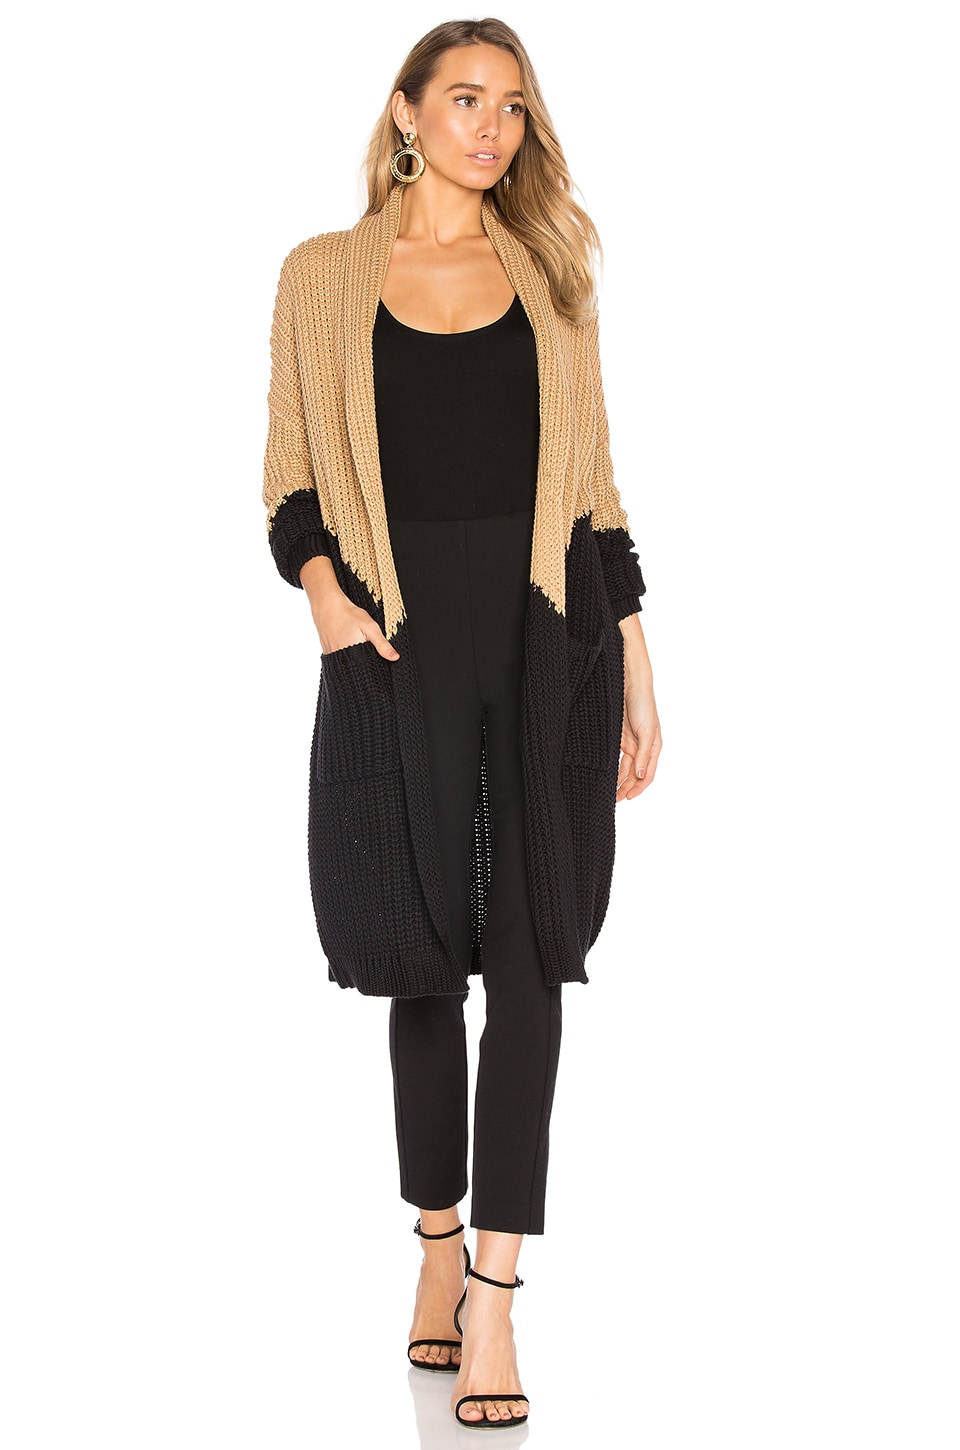 House of Harlow 1960 x REVOLVE Lucelle Cardigan in Black & Camel